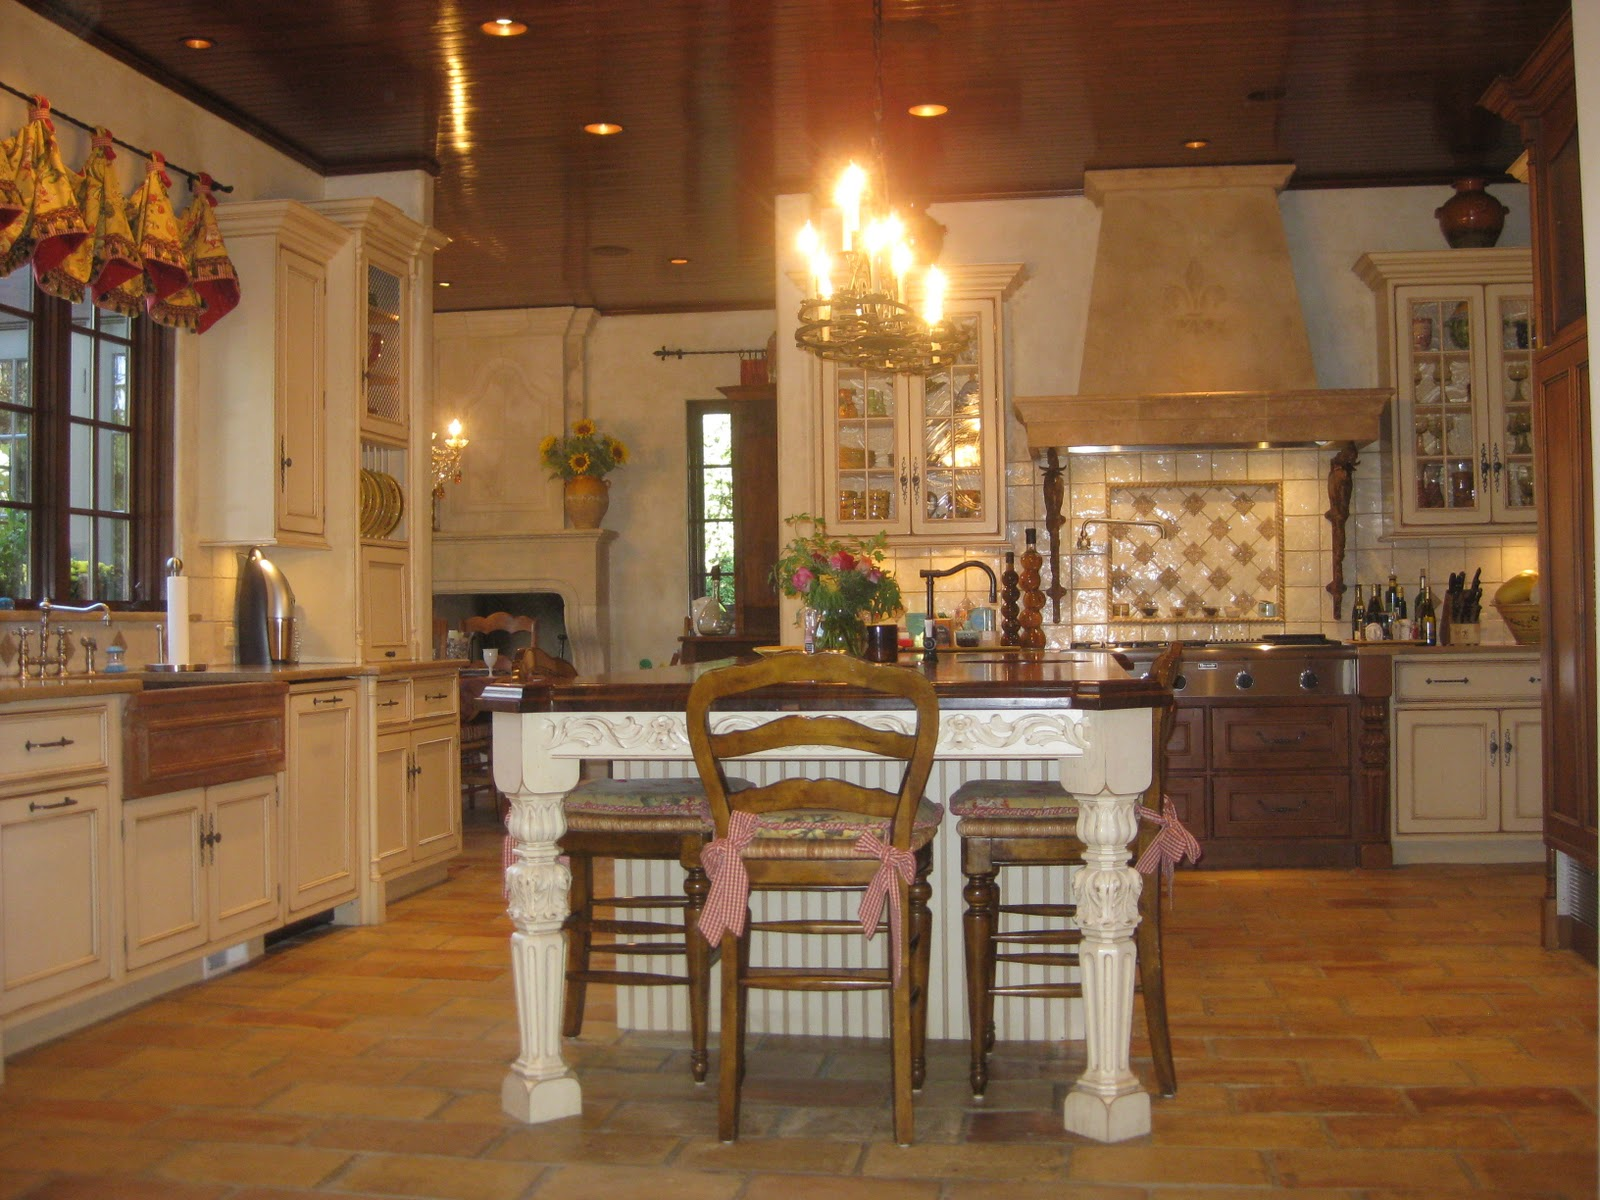 Country French Kitchens Kitchen Tiles Designs Always Robins Egg Blue All That Is Let